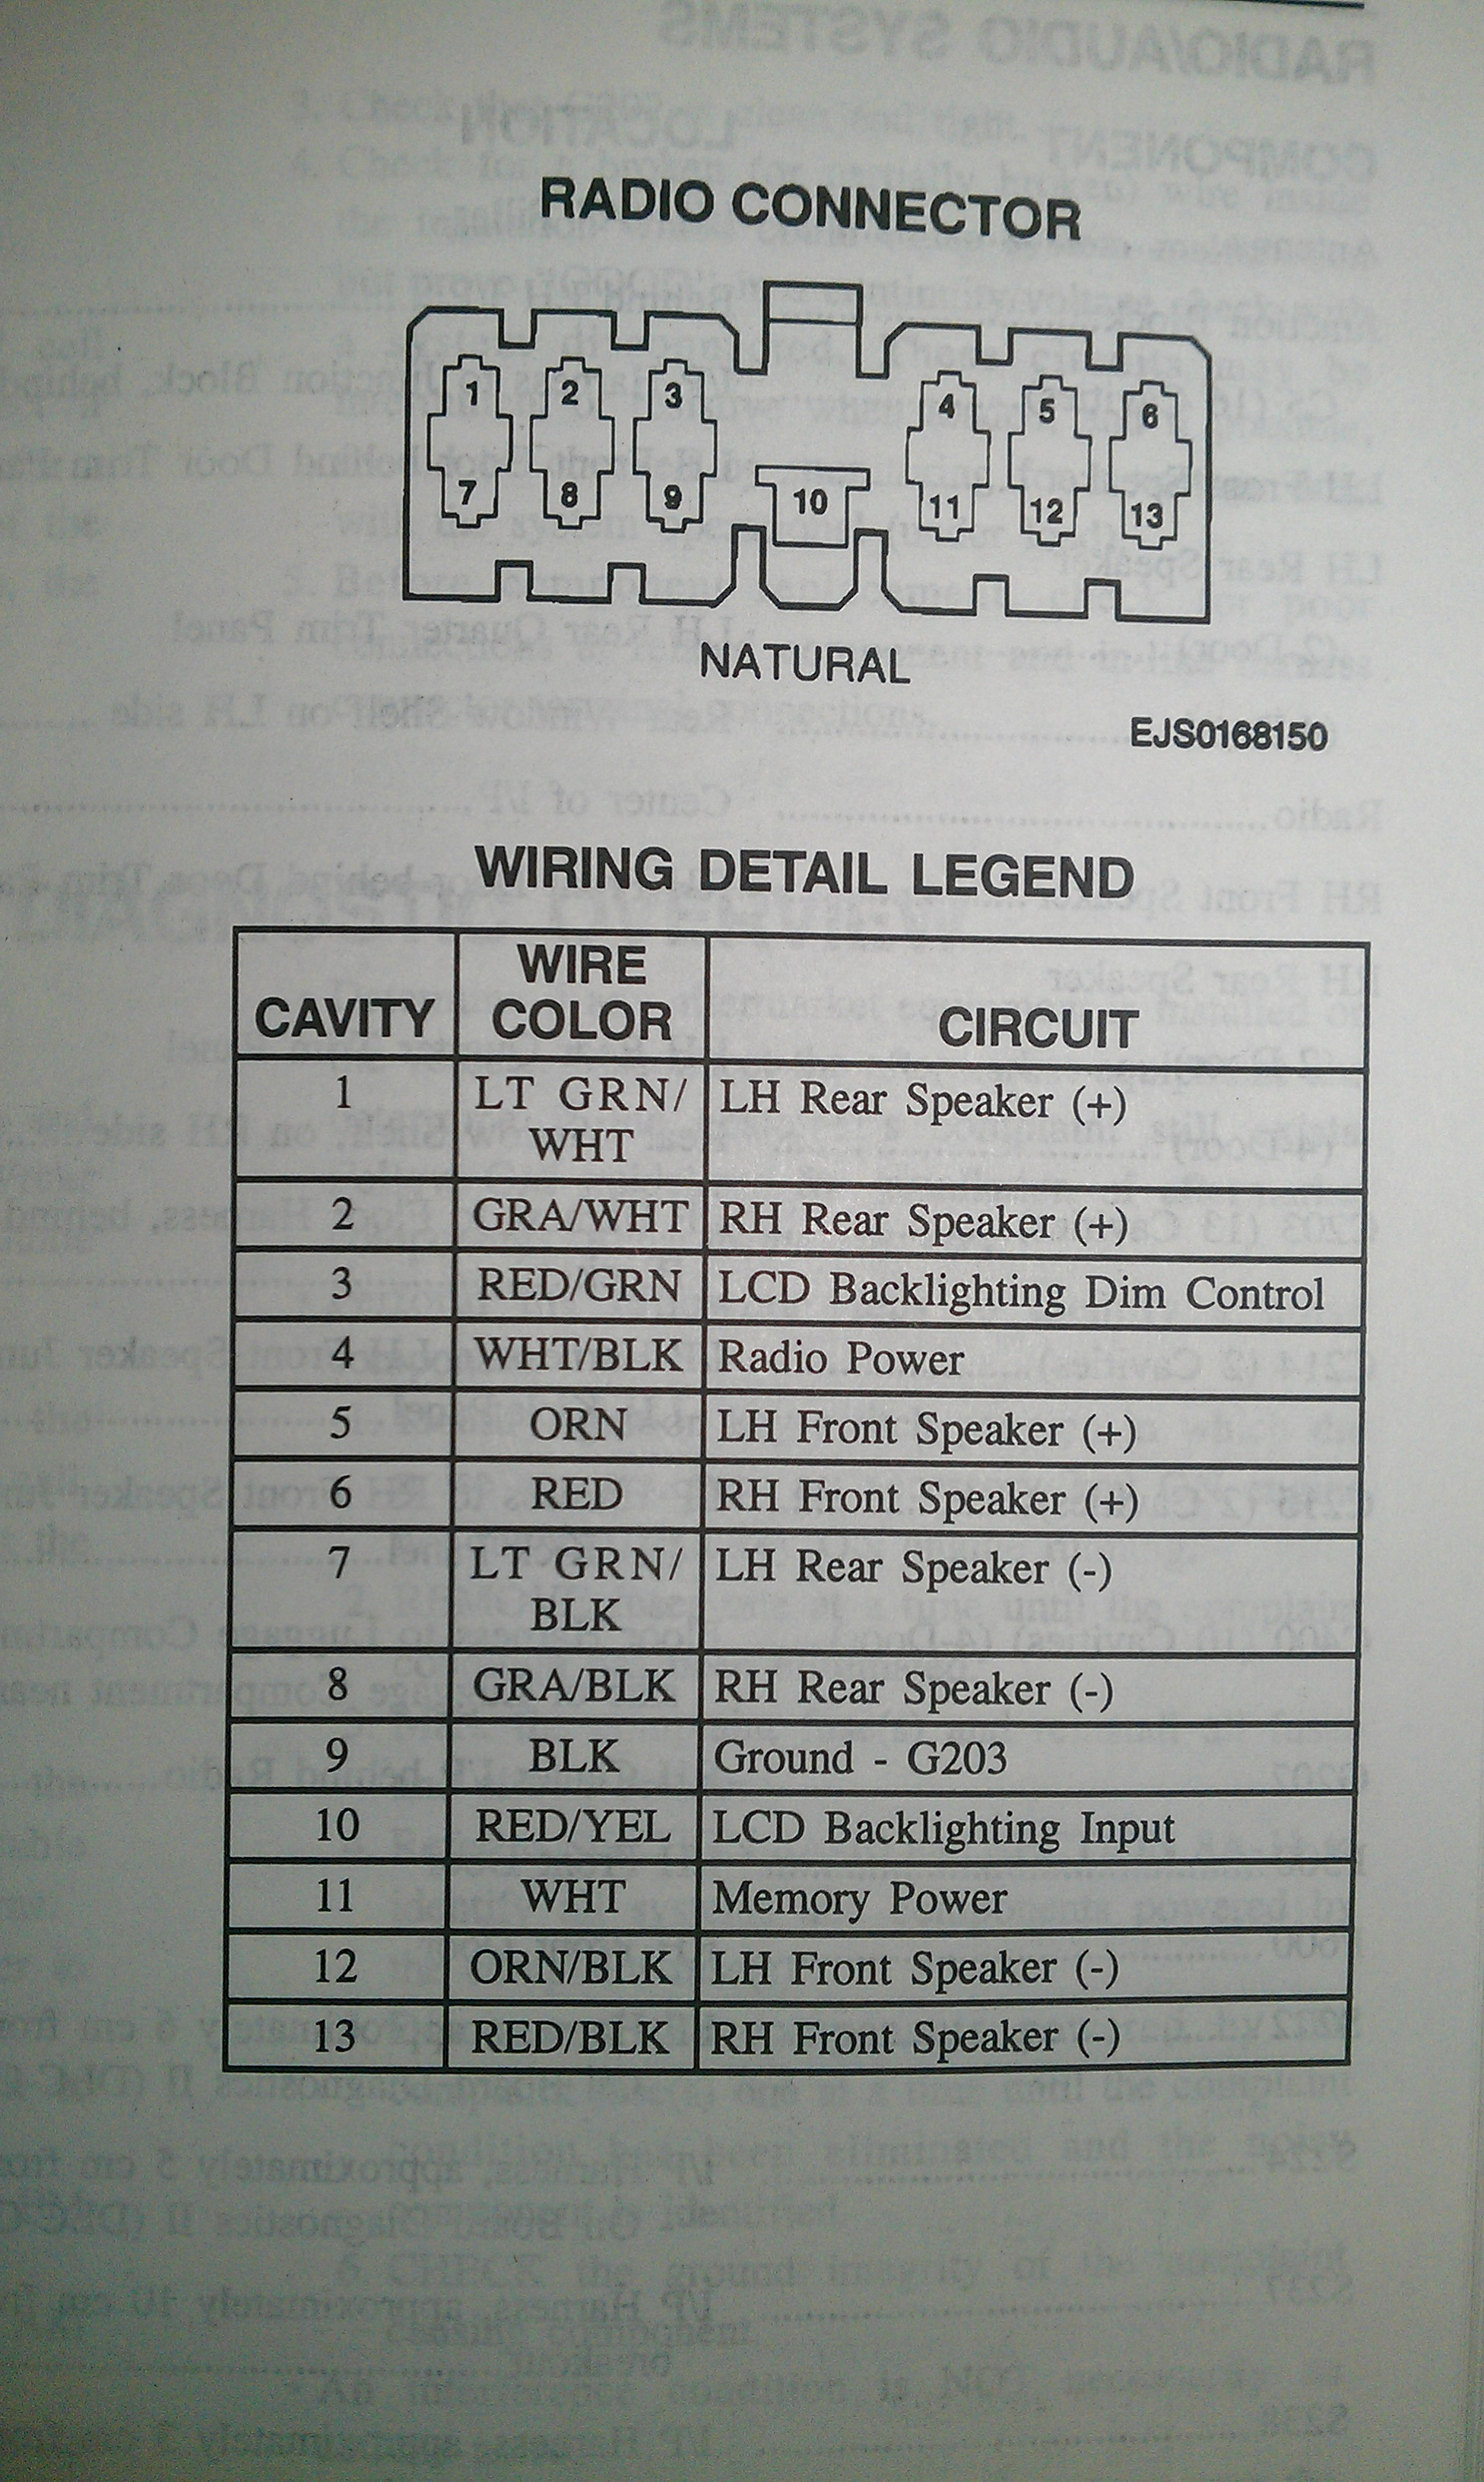 1997 geo metro stereo wiring diagram wiring diagram libraries 97 geo metro wiring diagram wiring diagrams scematicgeo metro stereo wiring diagram wiring diagrams 1994